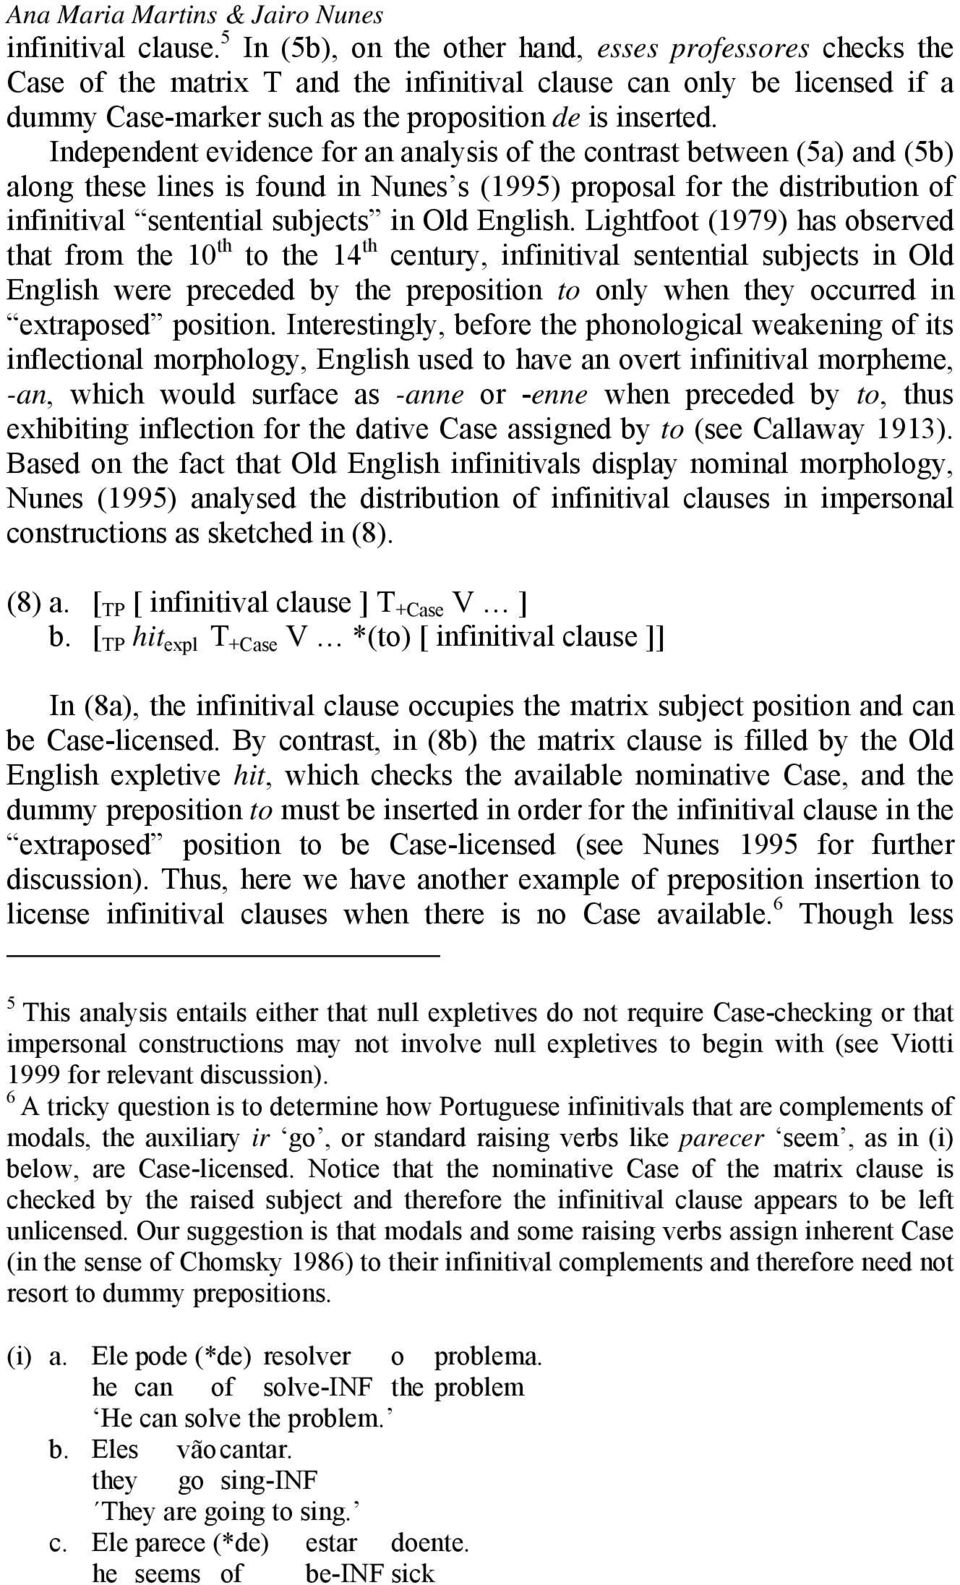 Independent evidence for an analysis of the contrast between (5a) and (5b) along these lines is found in Nunes s (1995) proposal for the distribution of infinitival sentential subjects in Old English.